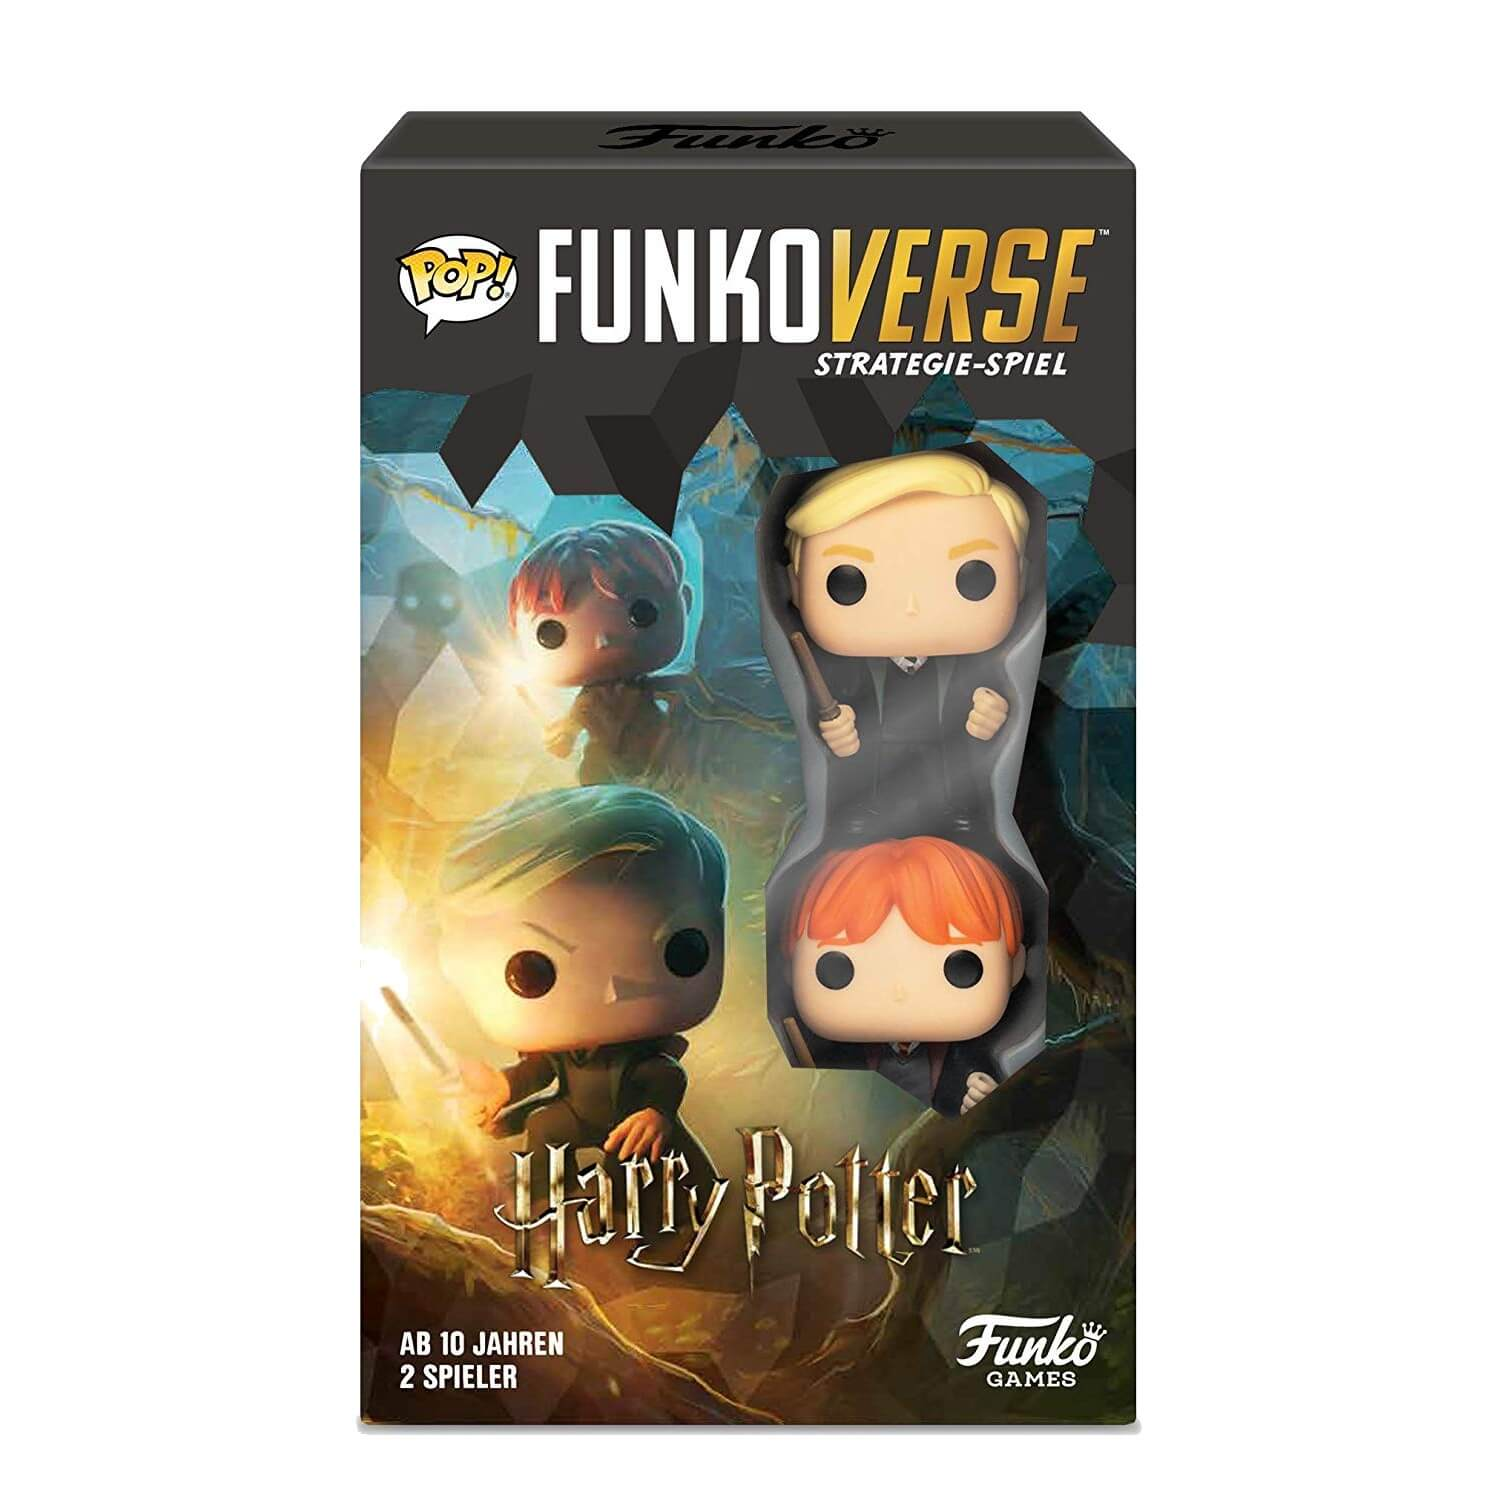 Image of Funkoverse Harry Potter 101 Expandalone (German)